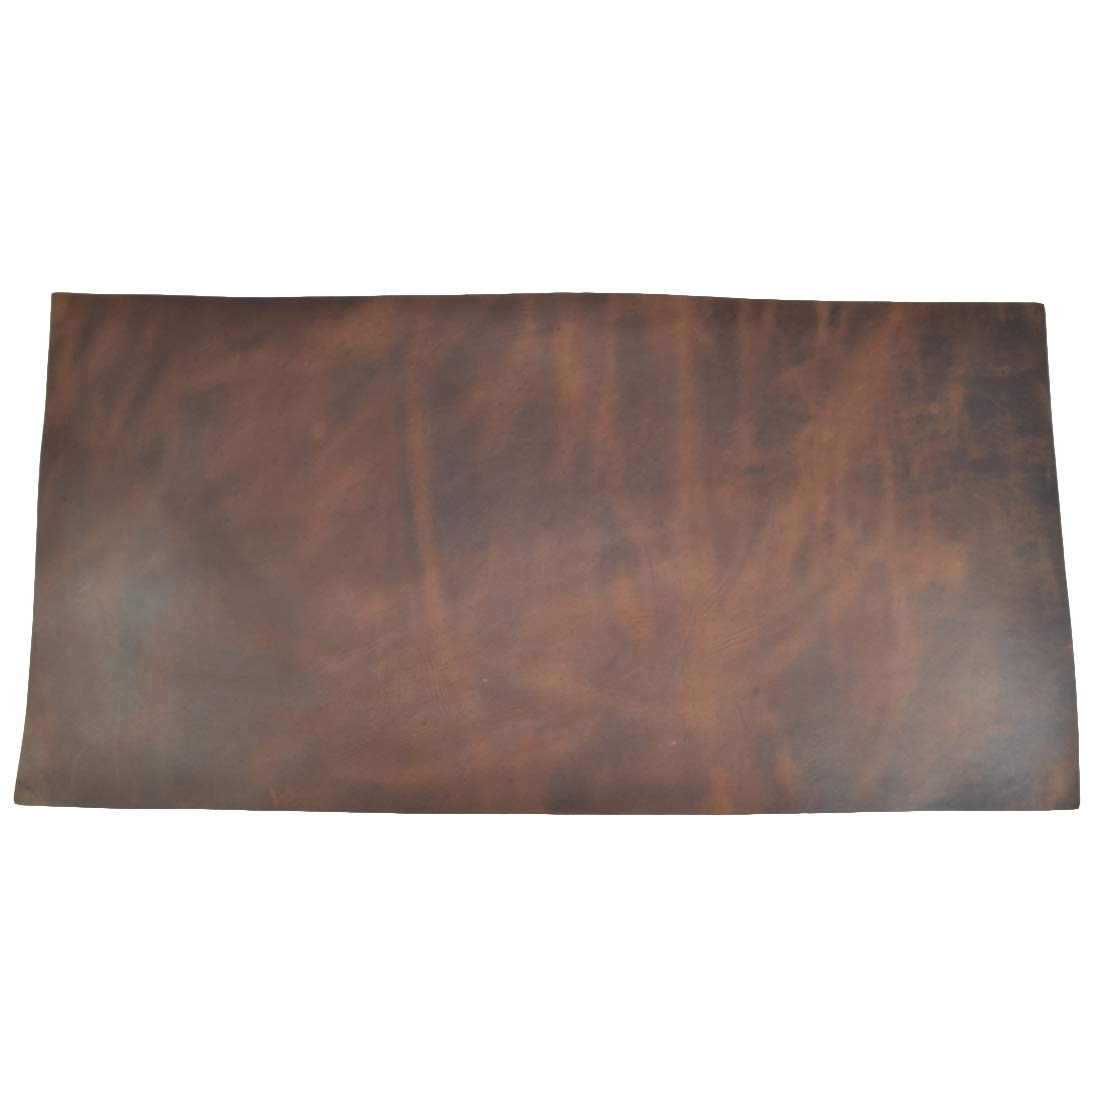 Leather Square (12''x24'') for Crafts/Tooling/Hobby Workshop, Medium Weight (1.8mm) by Hide & Drink :: Bourbon Brown